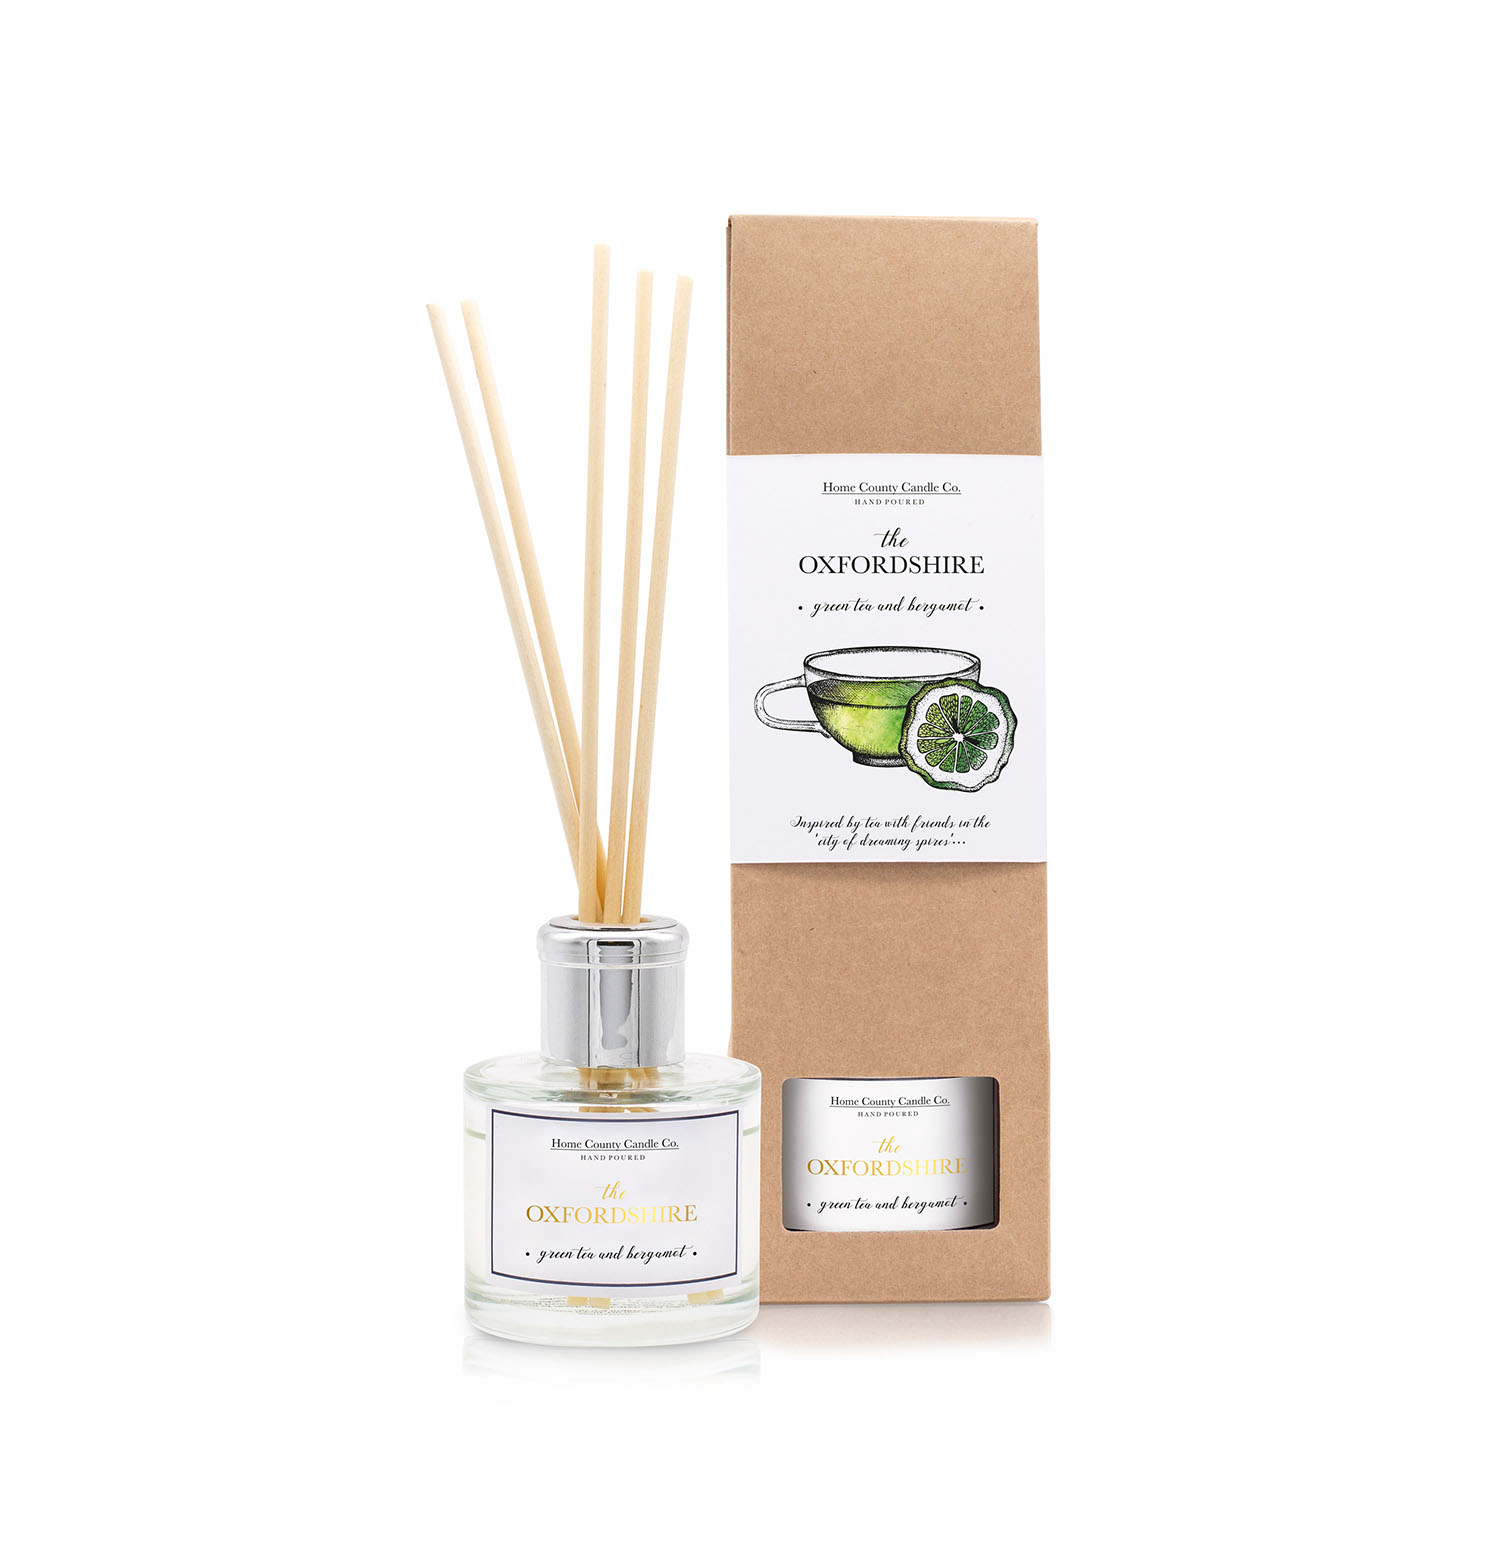 The Oxfordshire Reed Diffuser